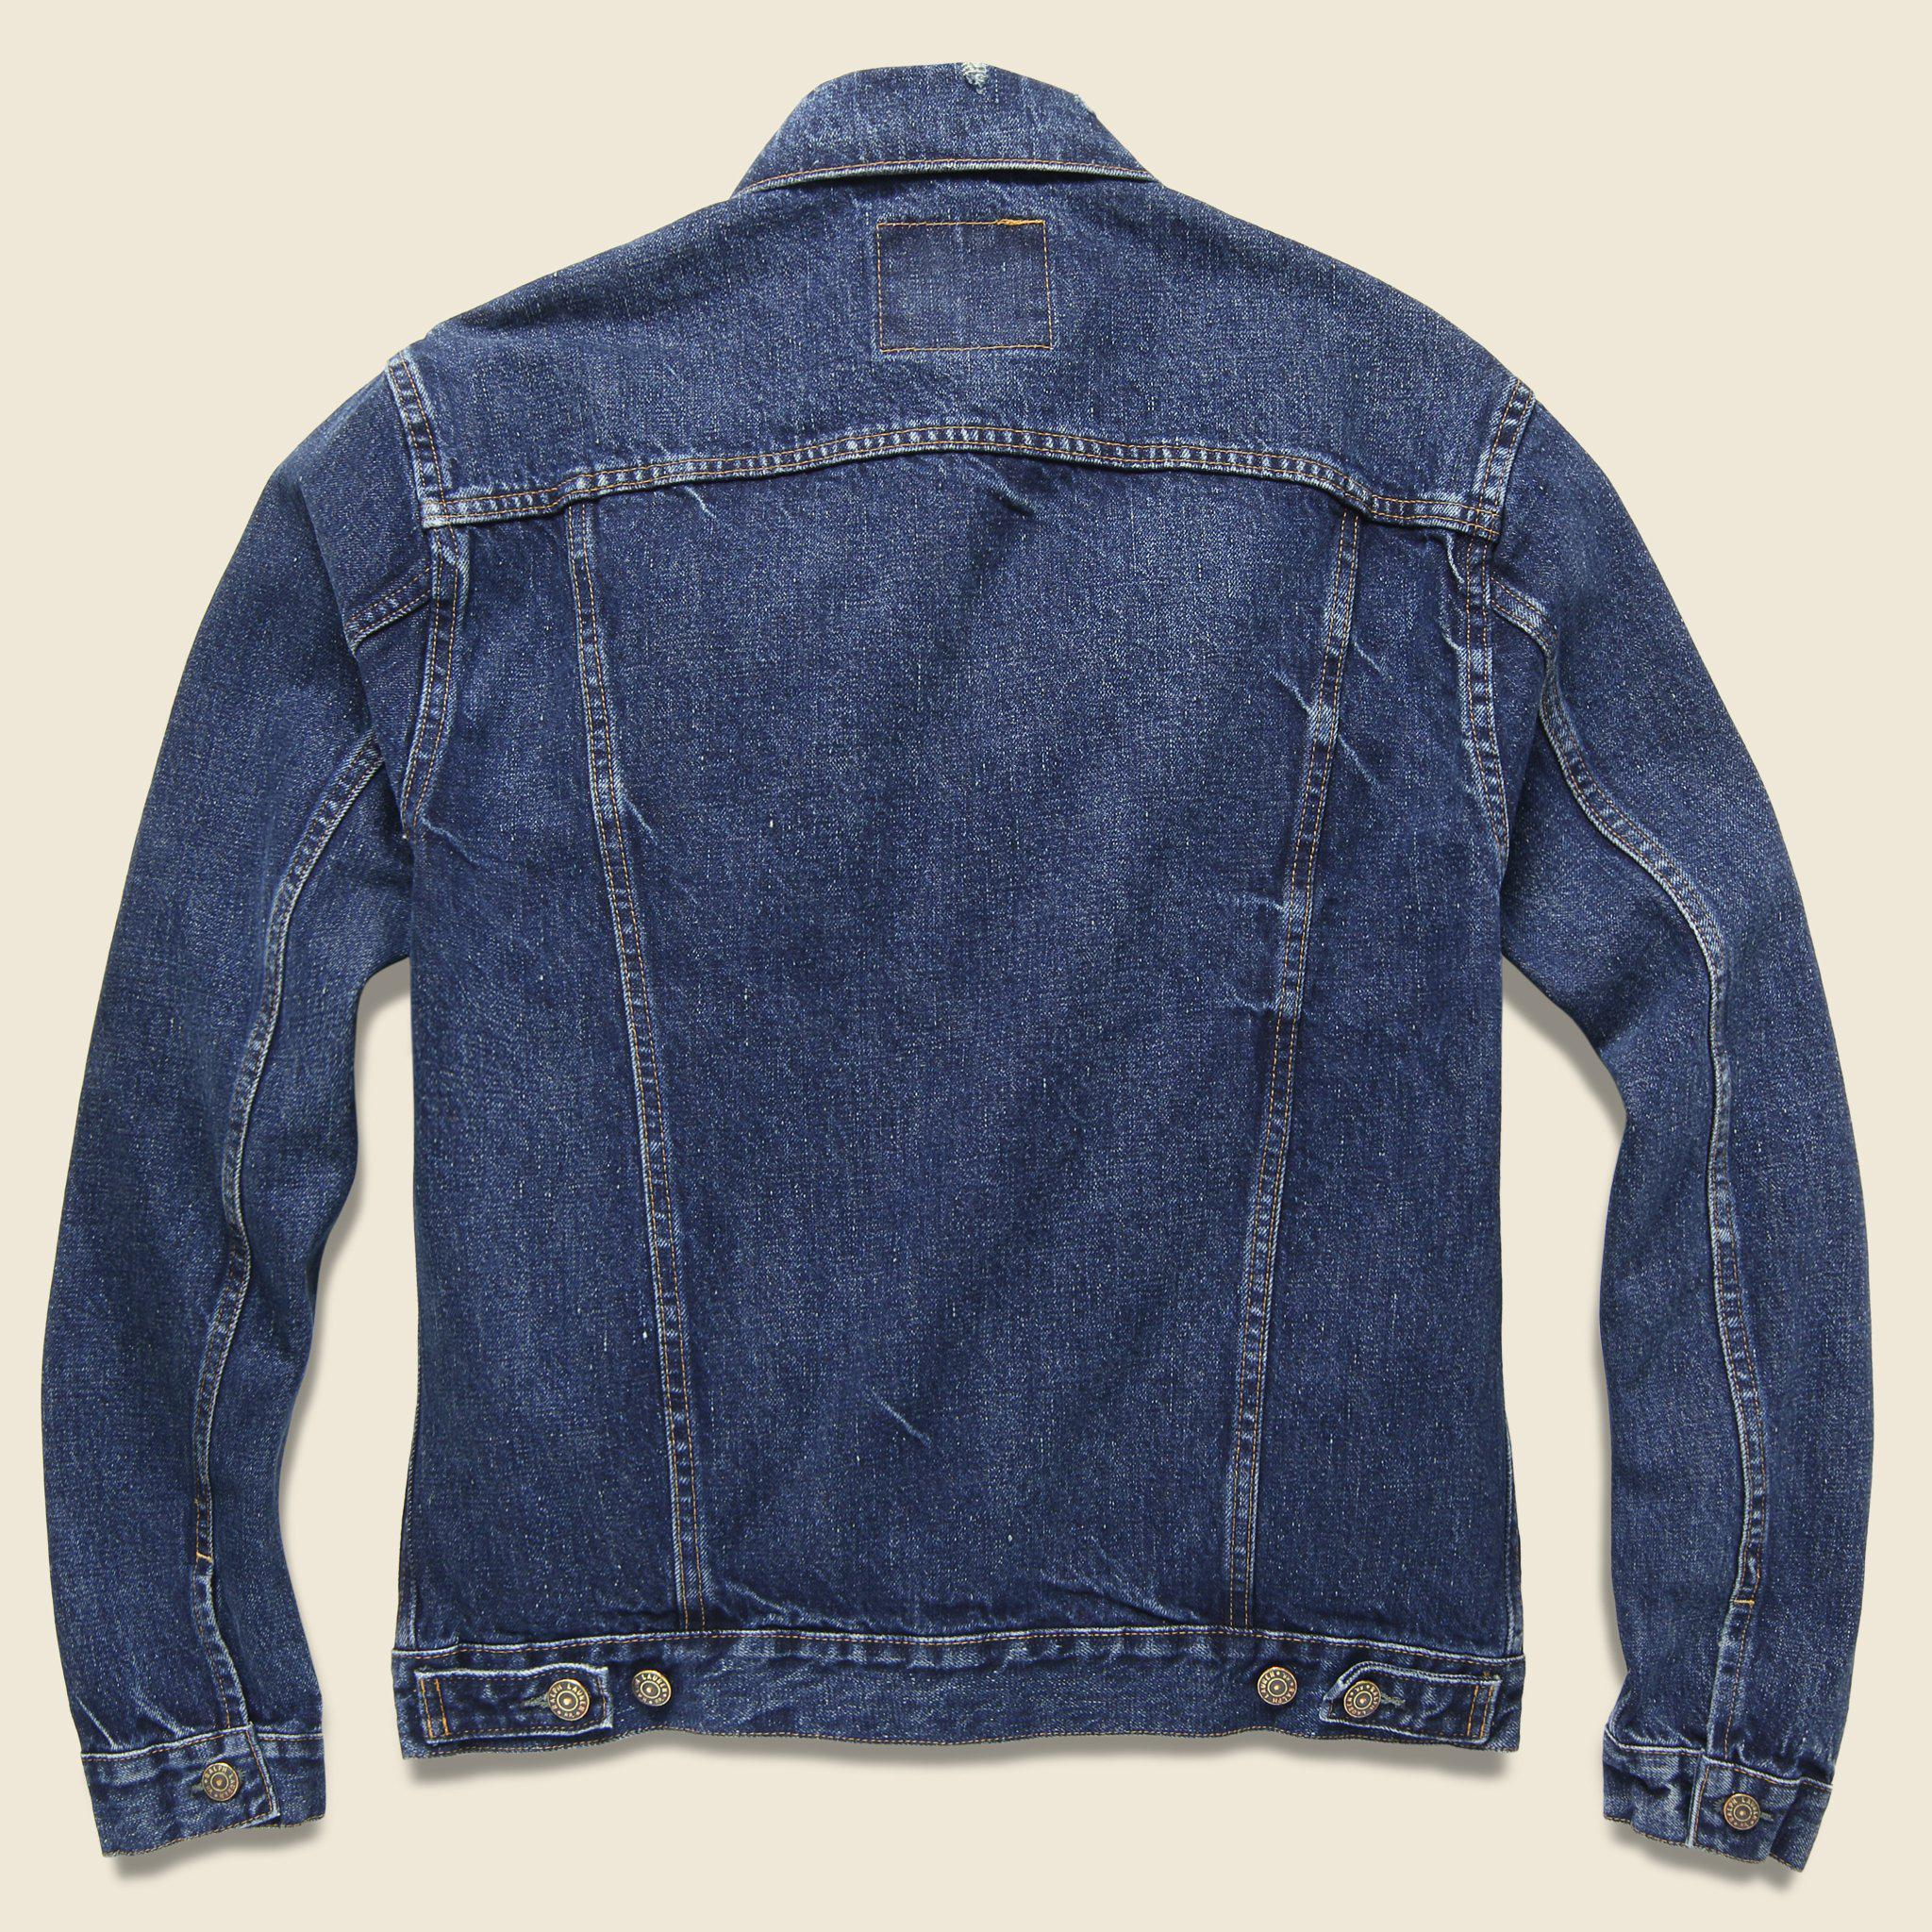 3377b74070 Lyst - RRL Denim Jacket - Stillwell Wash in Blue for Men